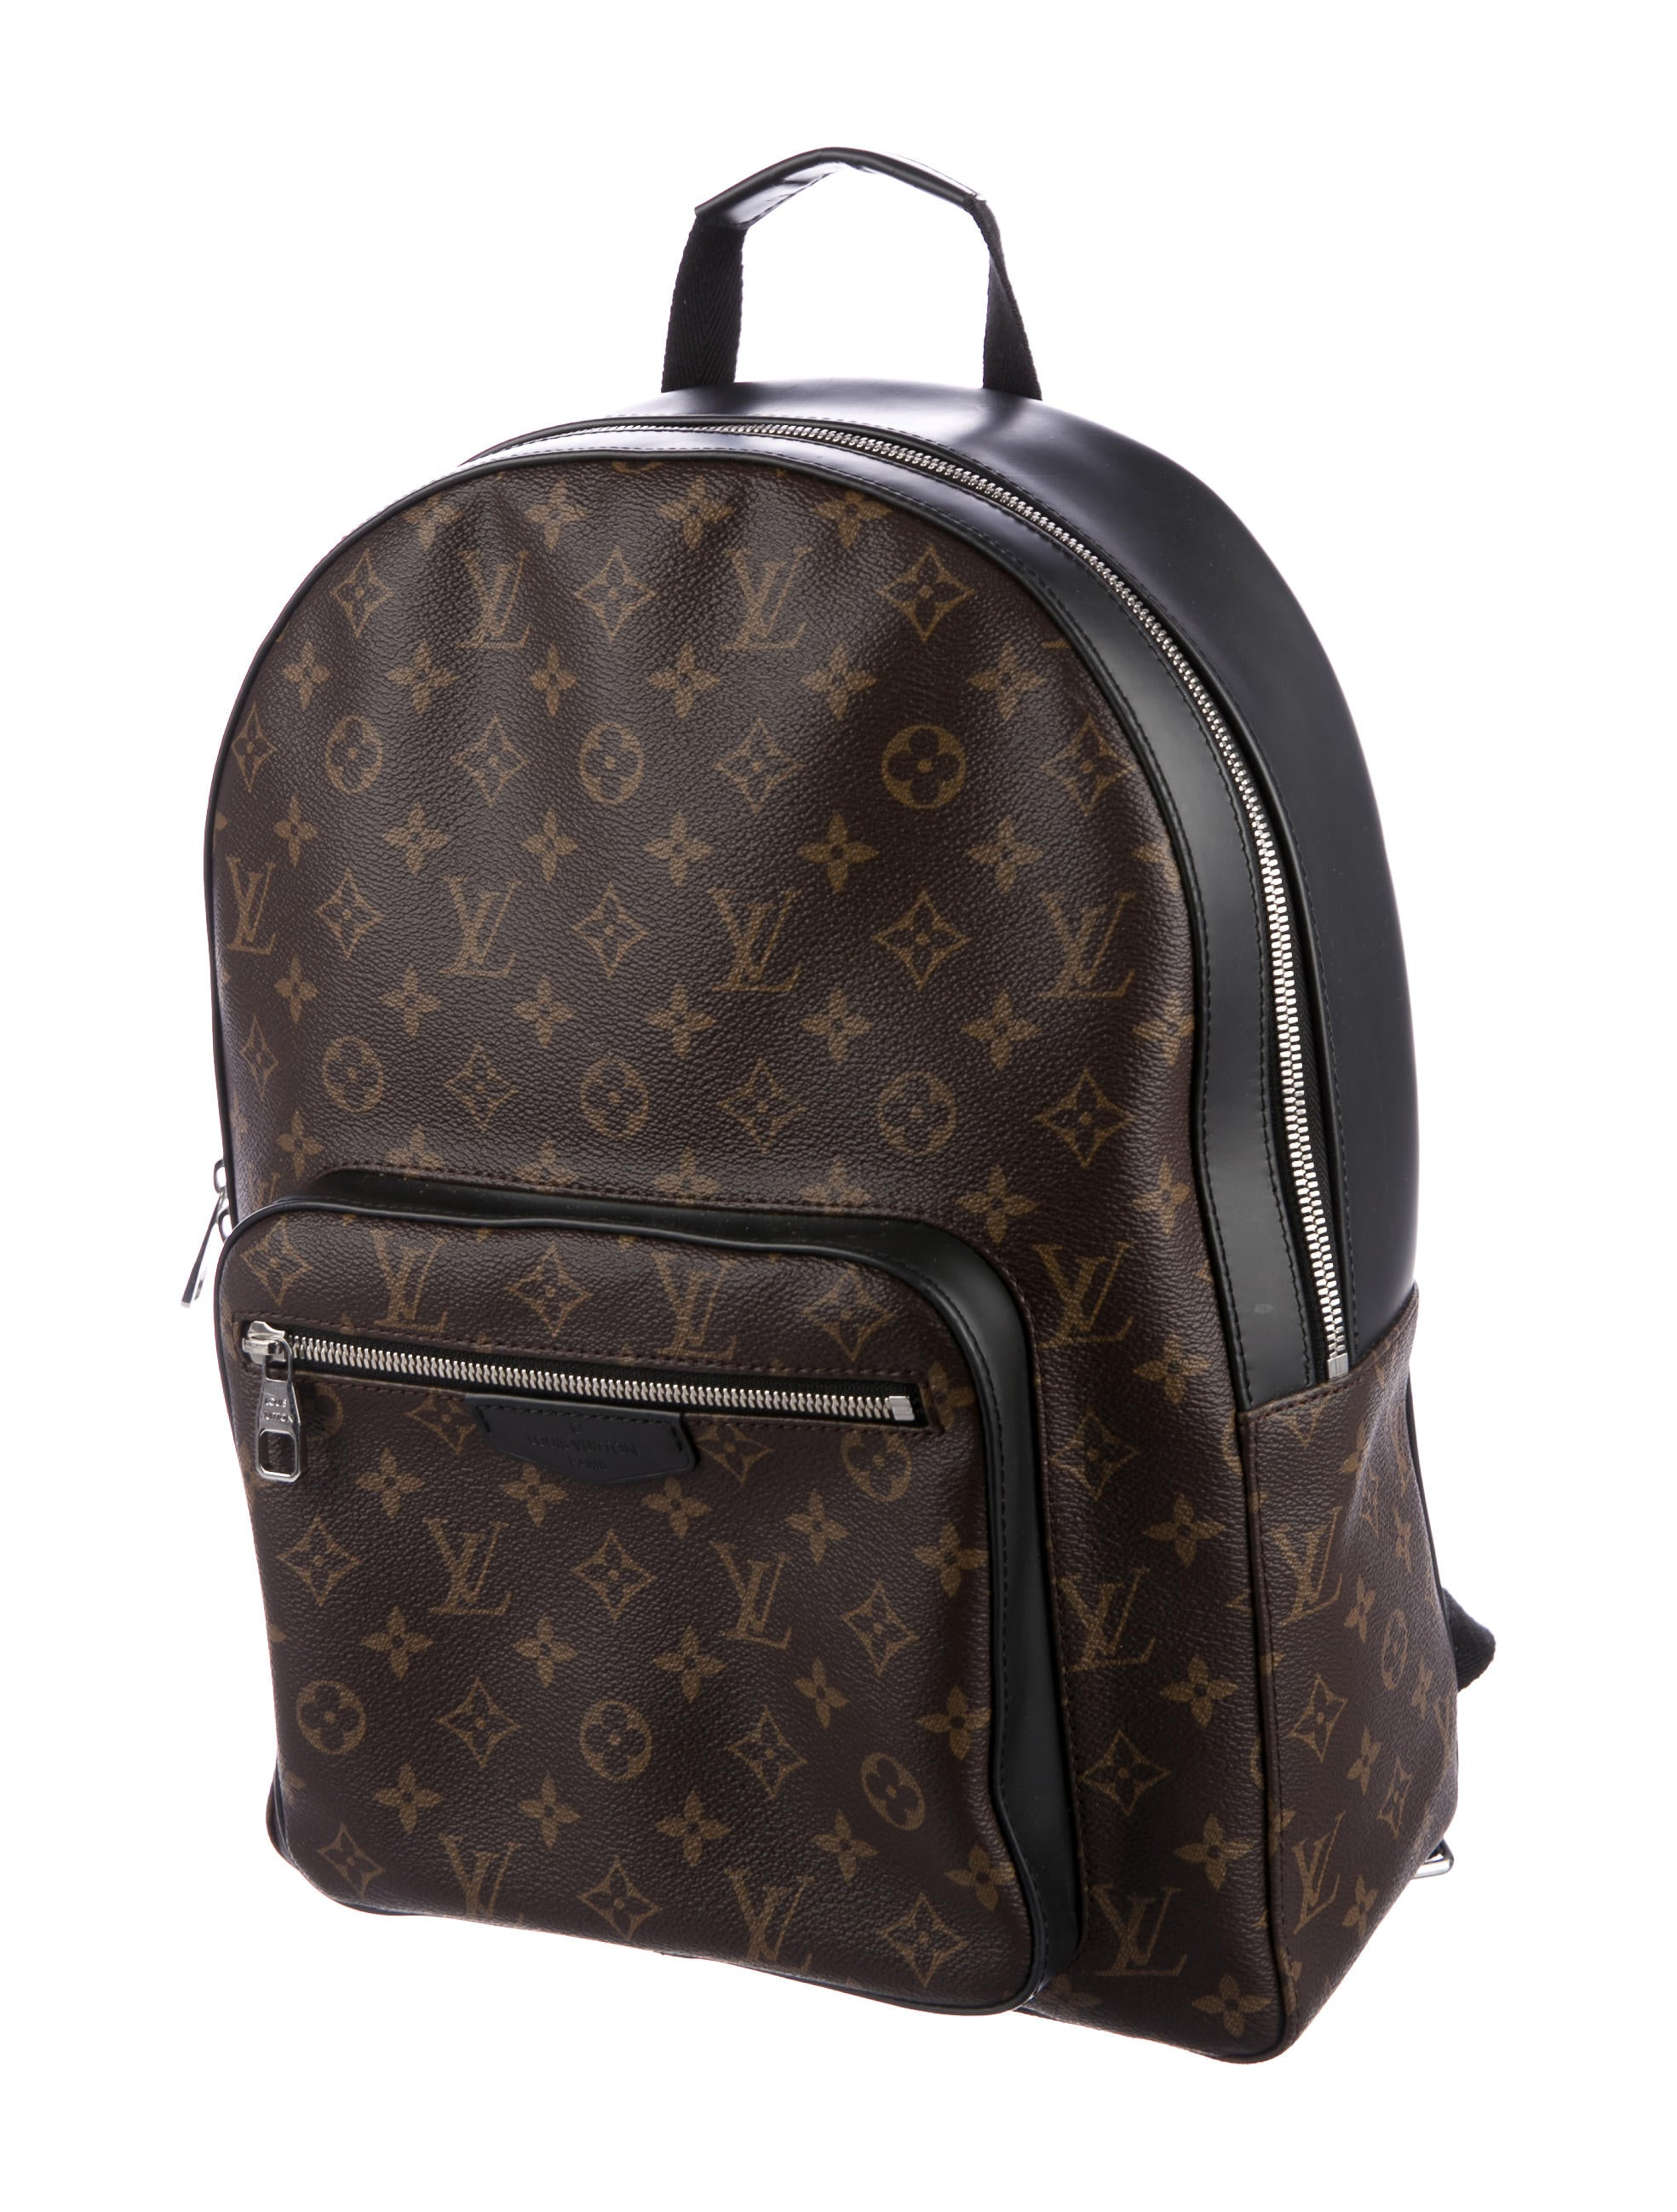 Louis Vuitton 2017 Monogram Macassar Josh Backpack